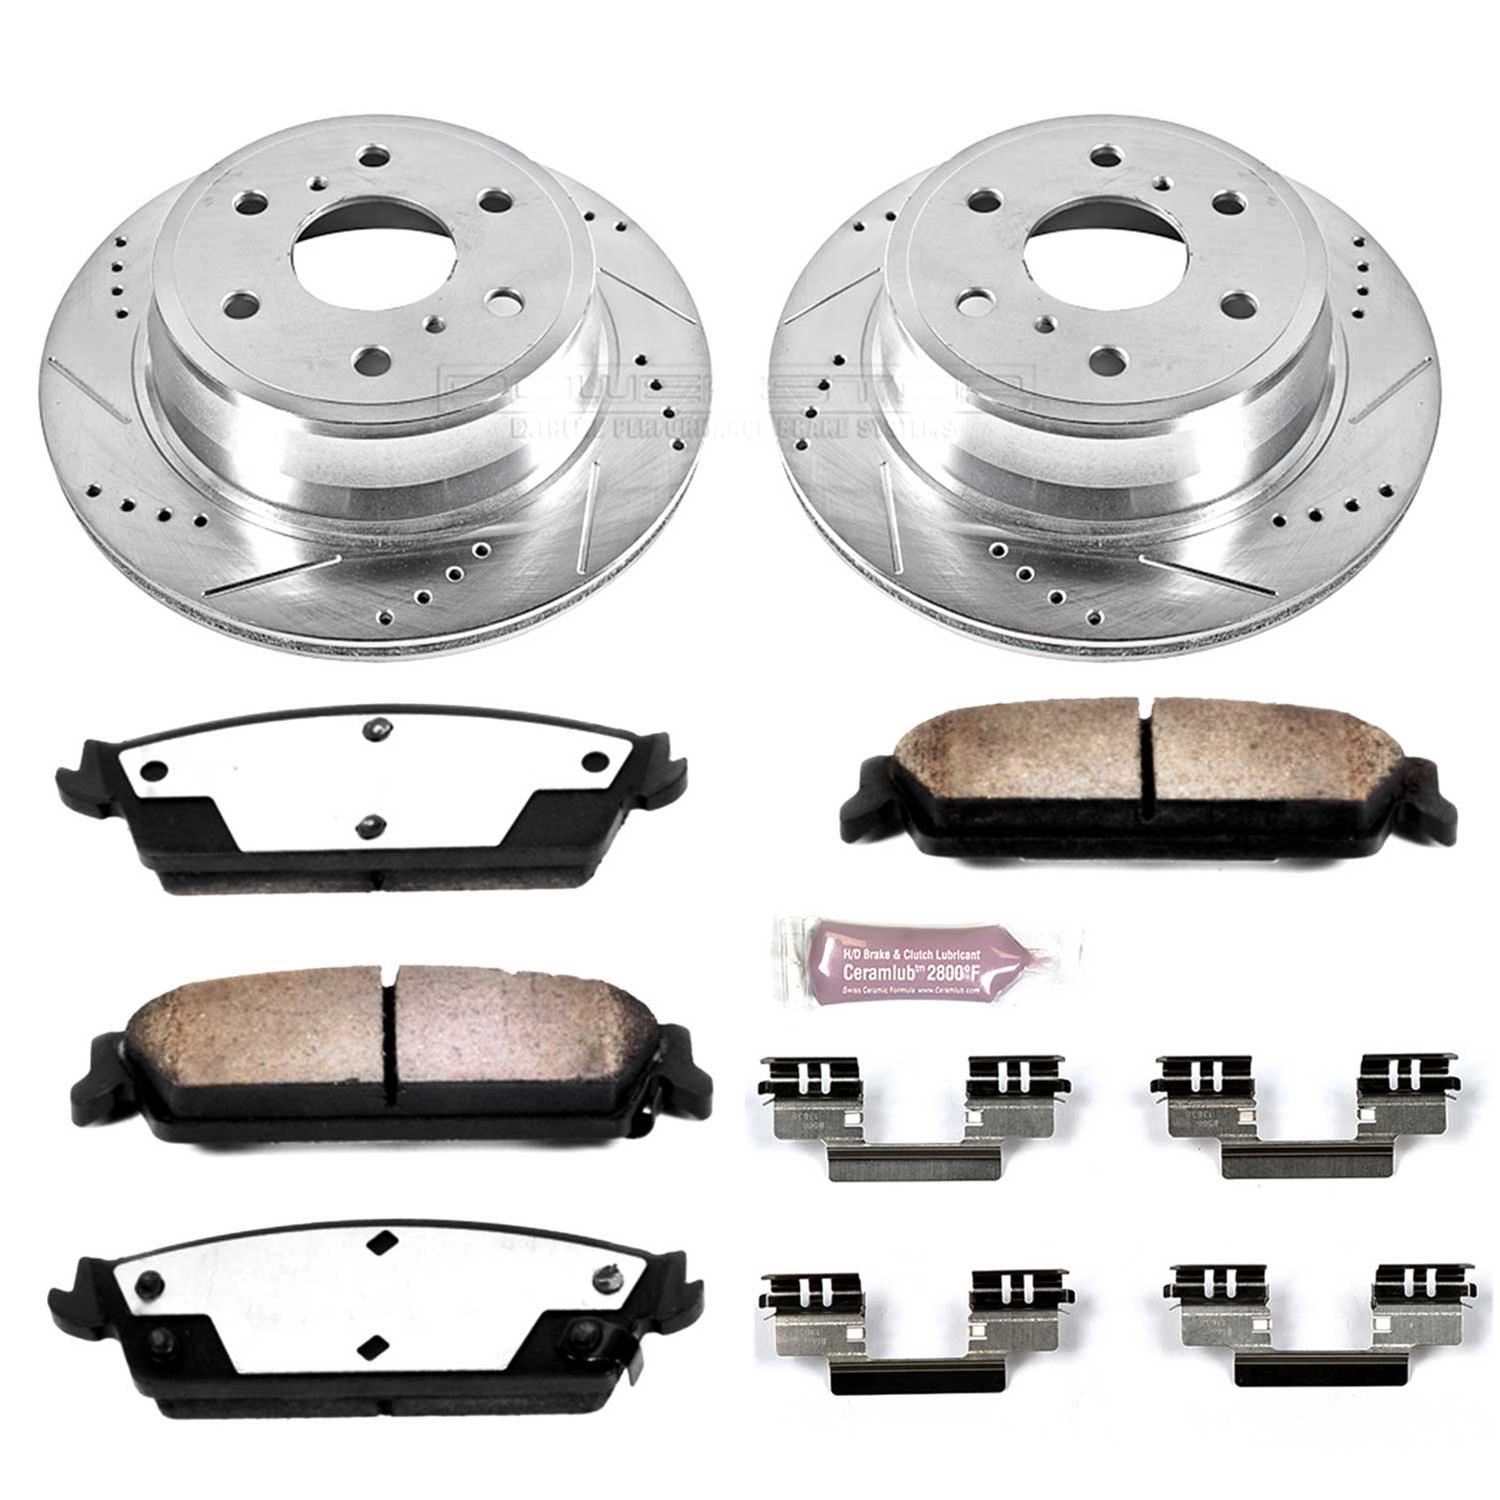 Power Stop K2070-36 1-Click Extreme Truck and Tow Brake Kit